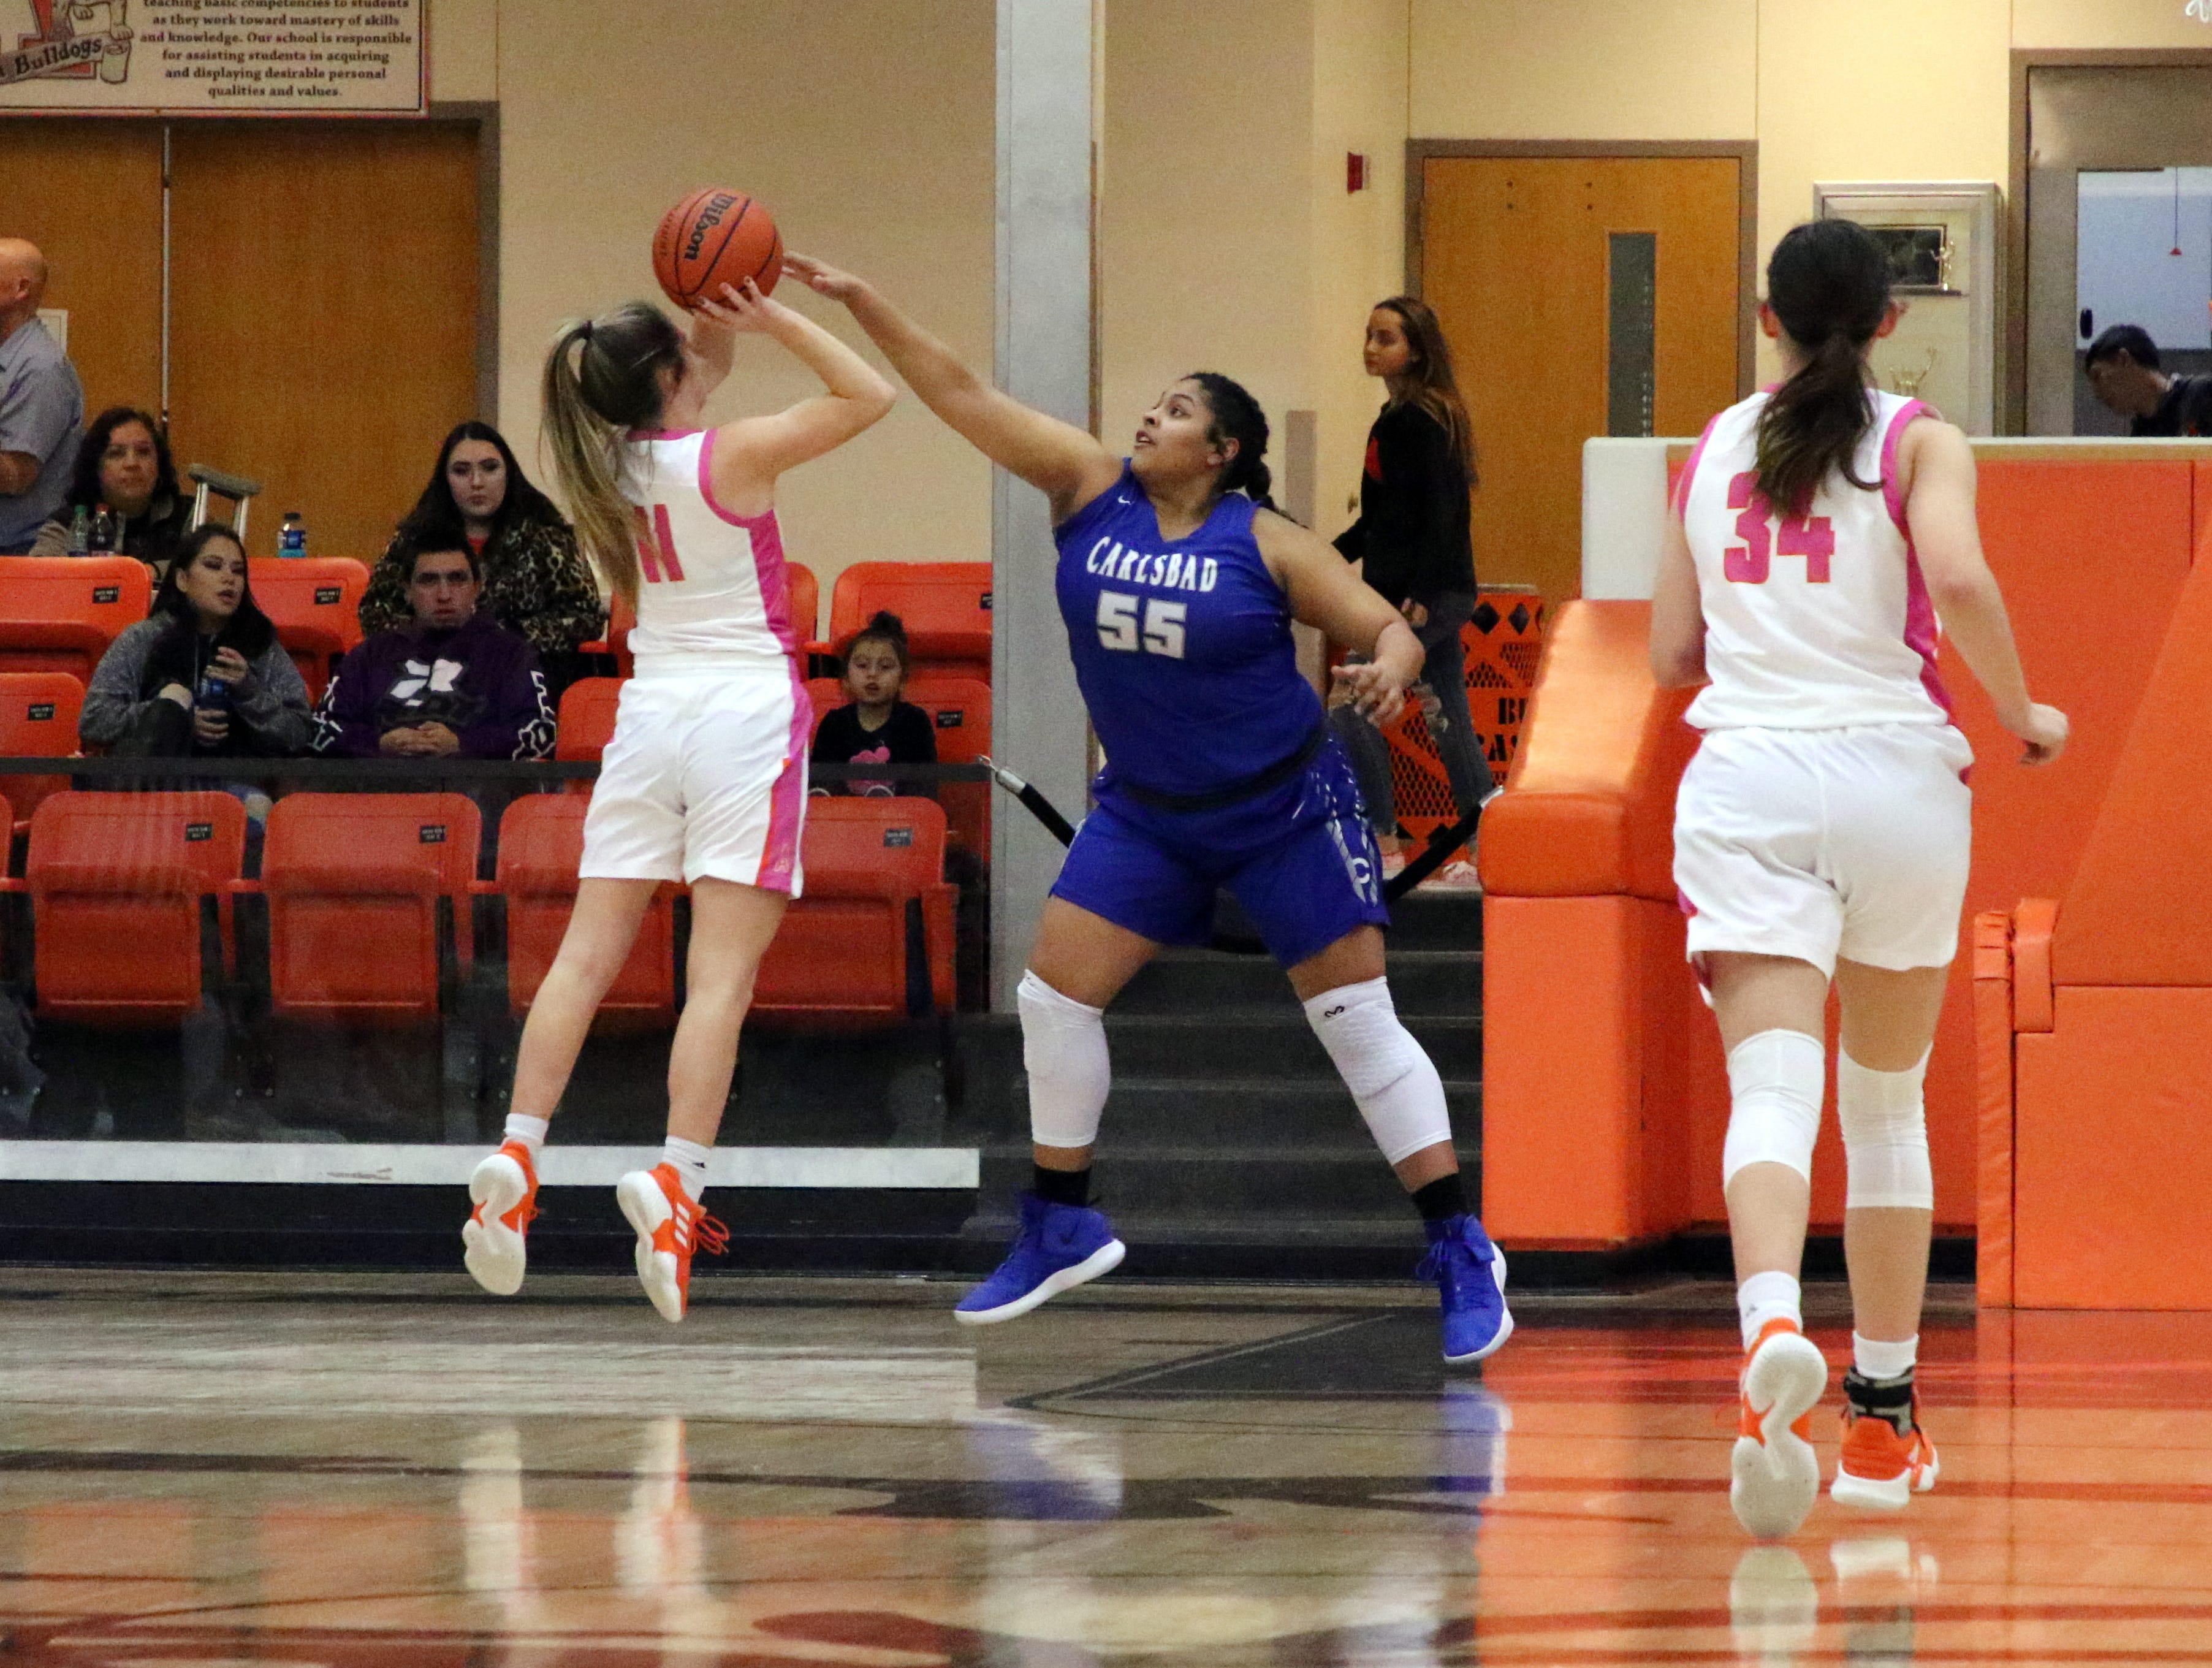 Carlsbad's Kaliyah Montoya (55) goes for a block against Artesia's Makinli Taylor (11) during Friday's game. Taylor finished with eight points and Montoya had one block.